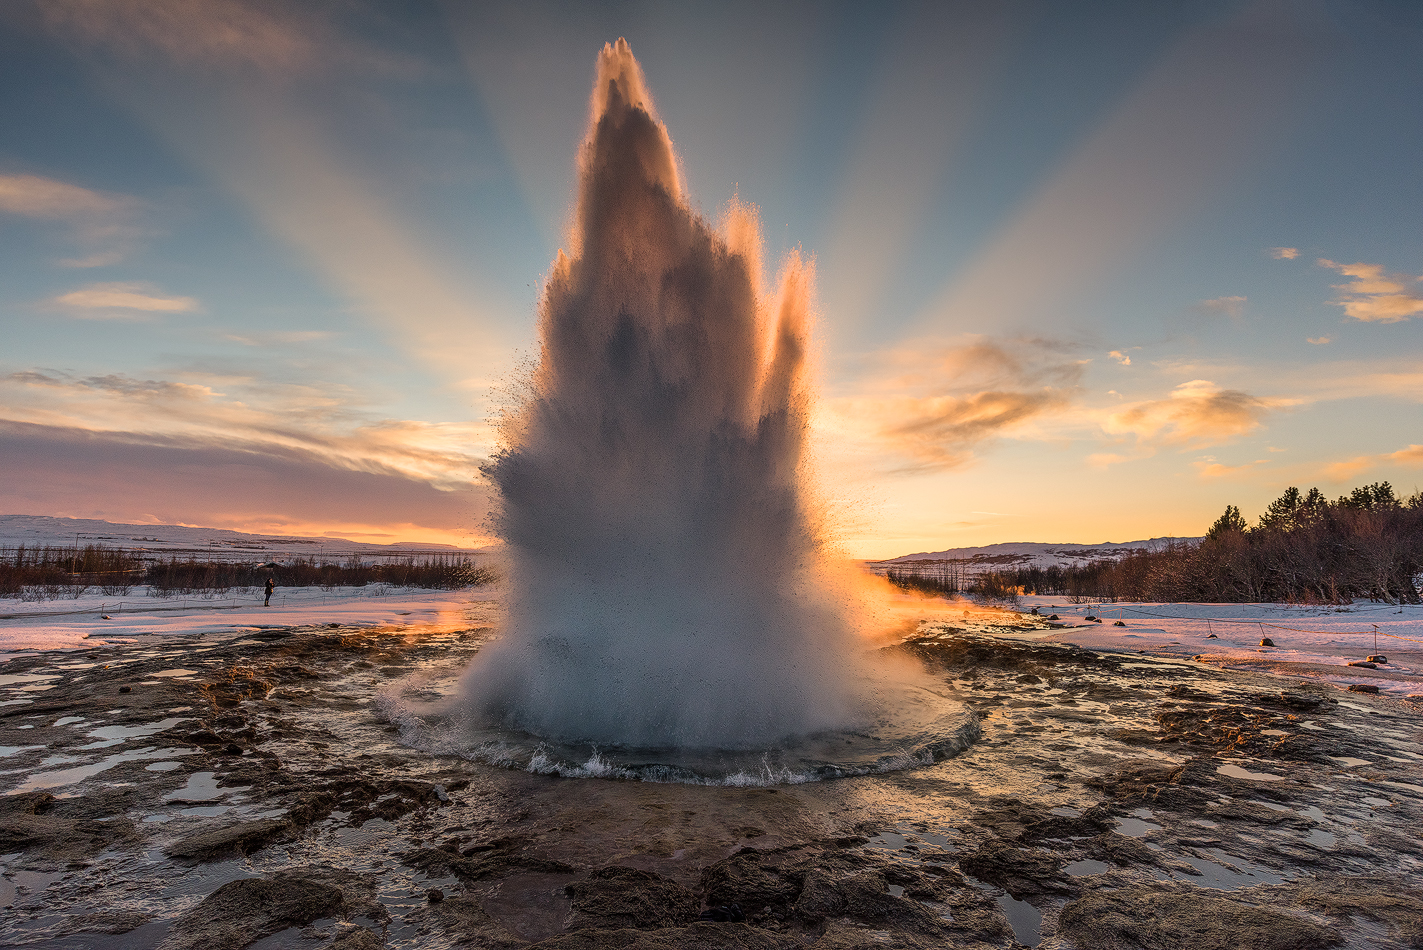 The extraordinary Strokkur geyser erupting.